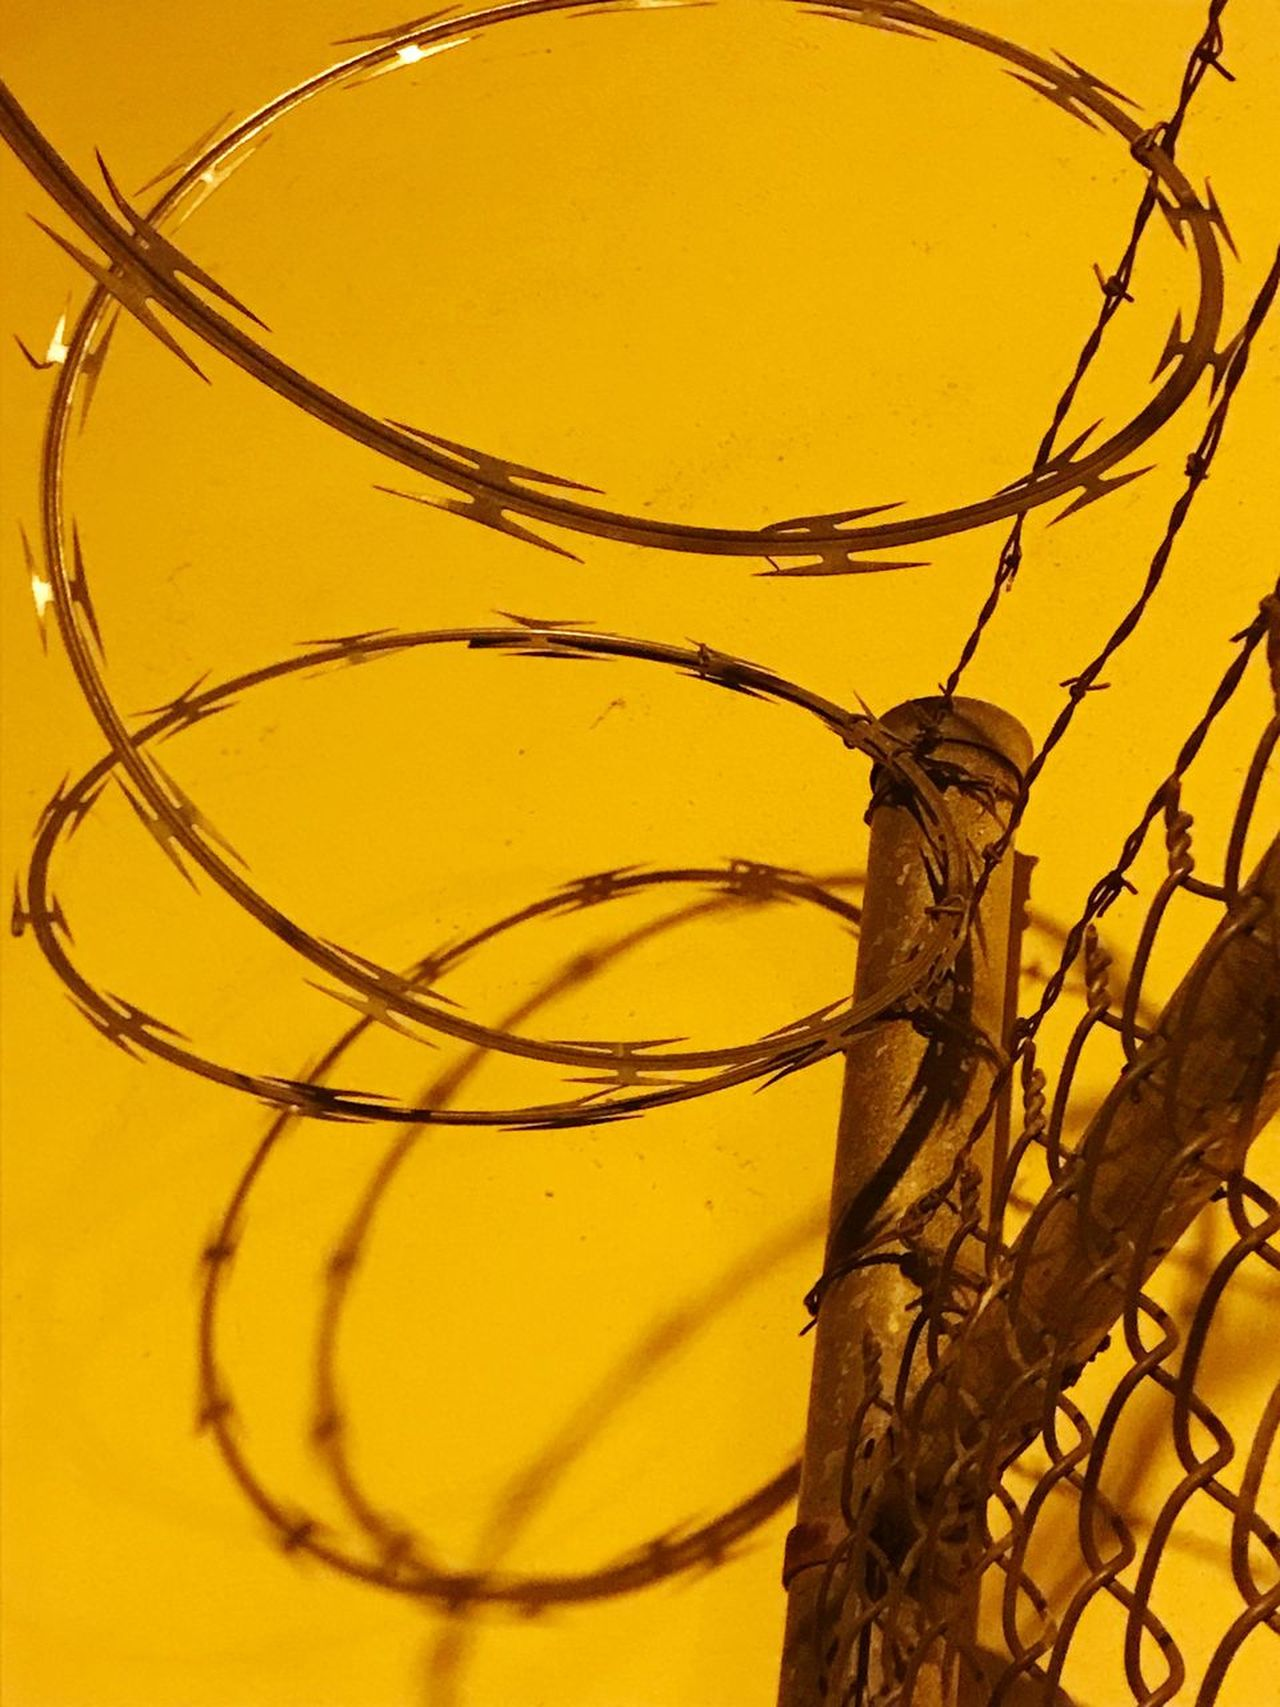 The cage Close-up Yellow No People Day Outdoors Barbed Wire Razor Wire Razor Wire Fence Caged No Freedom